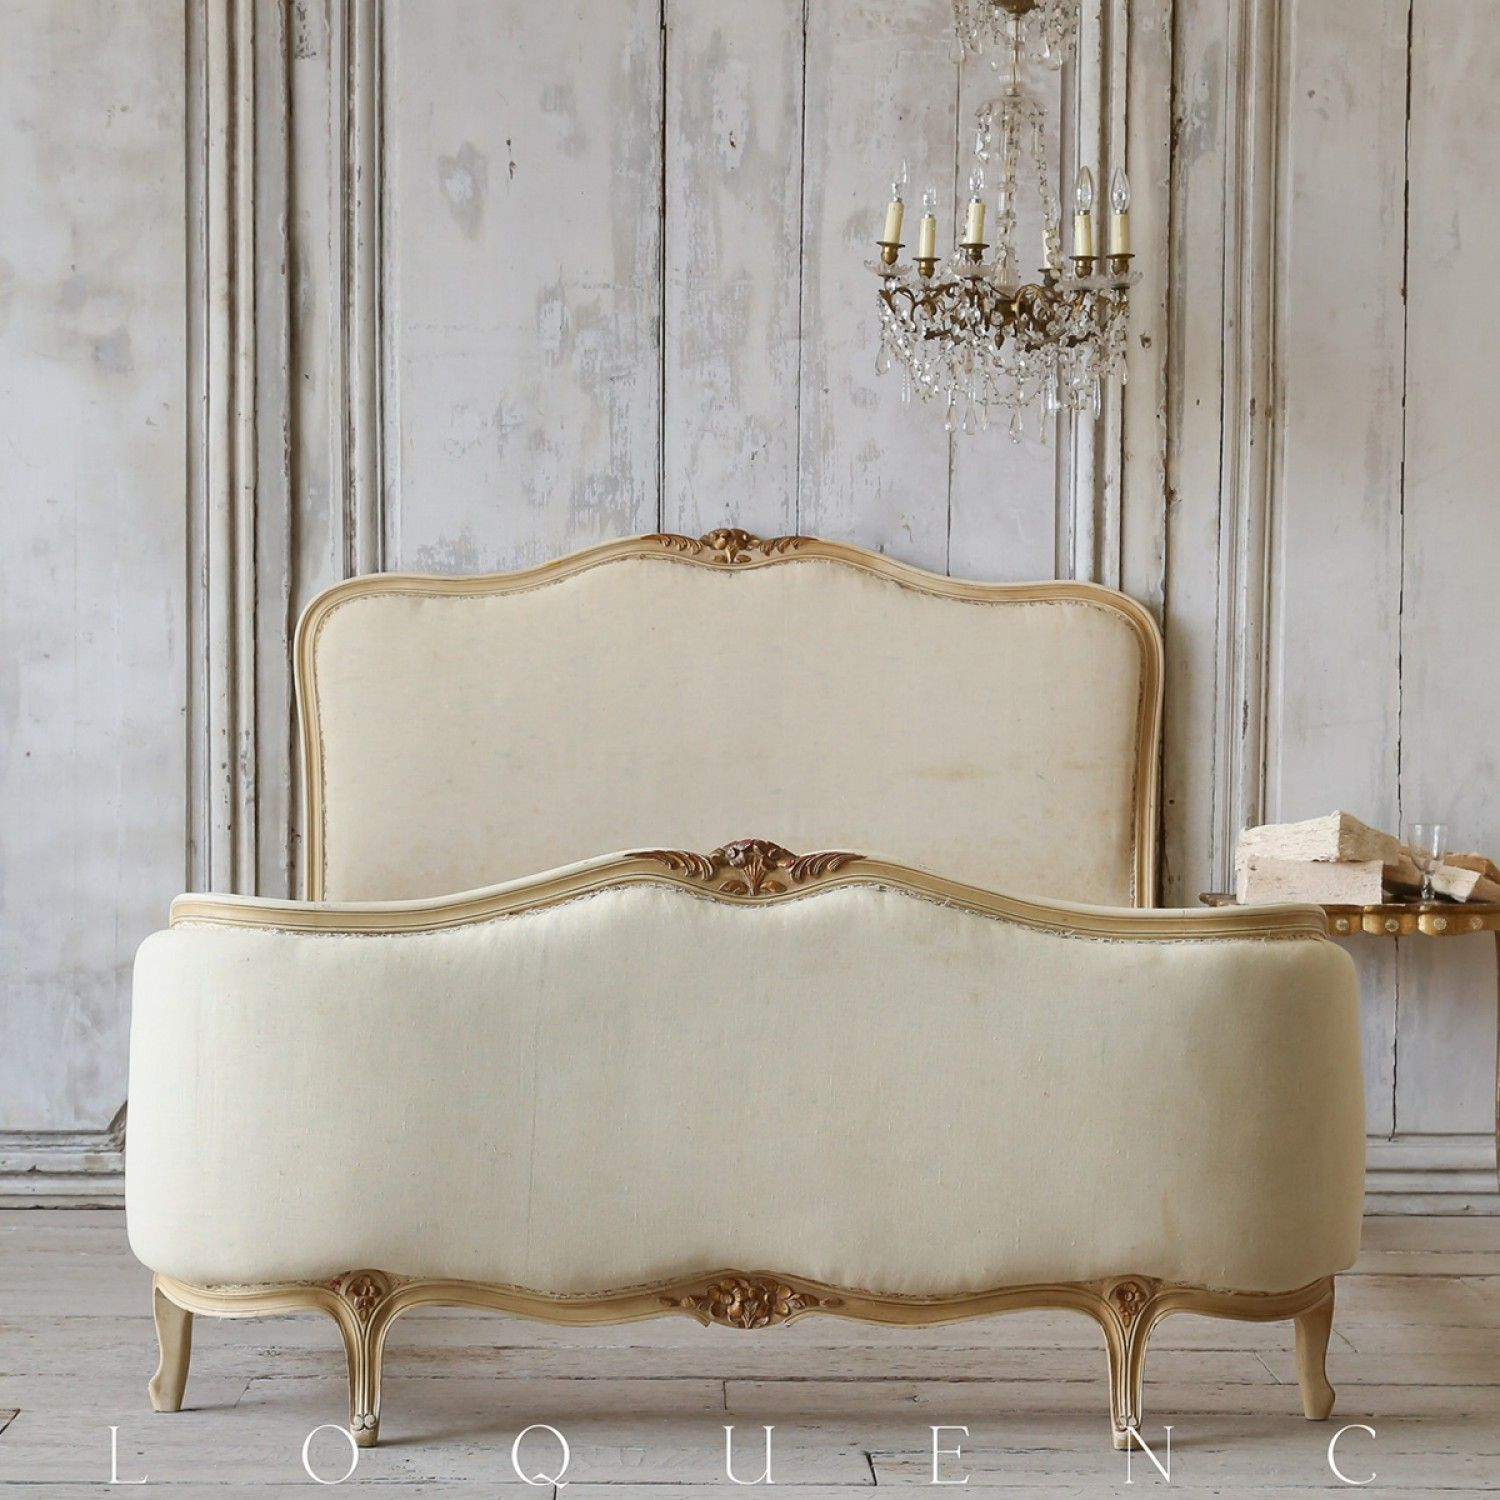 1910 Antique Pale Cream Enamel Bed (With images) French